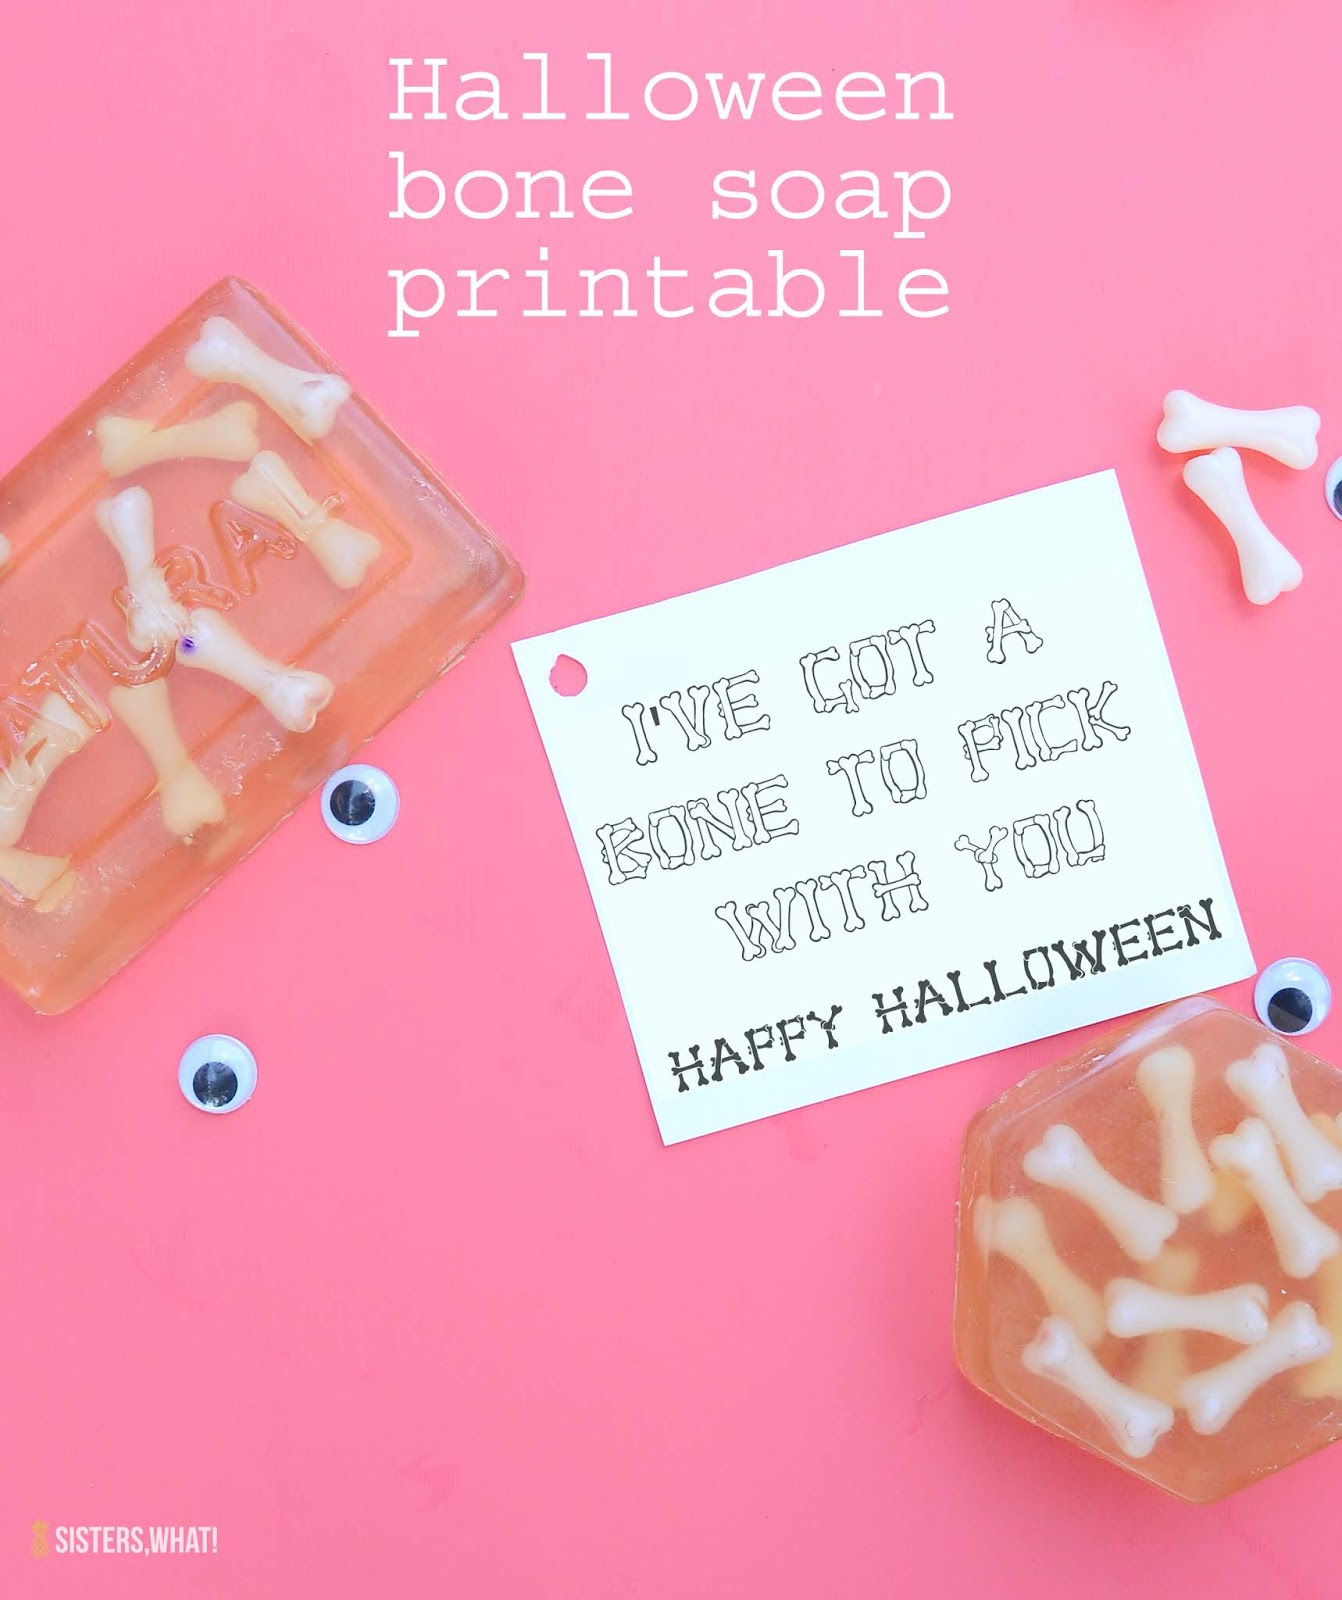 Halloween gift bone soap printable